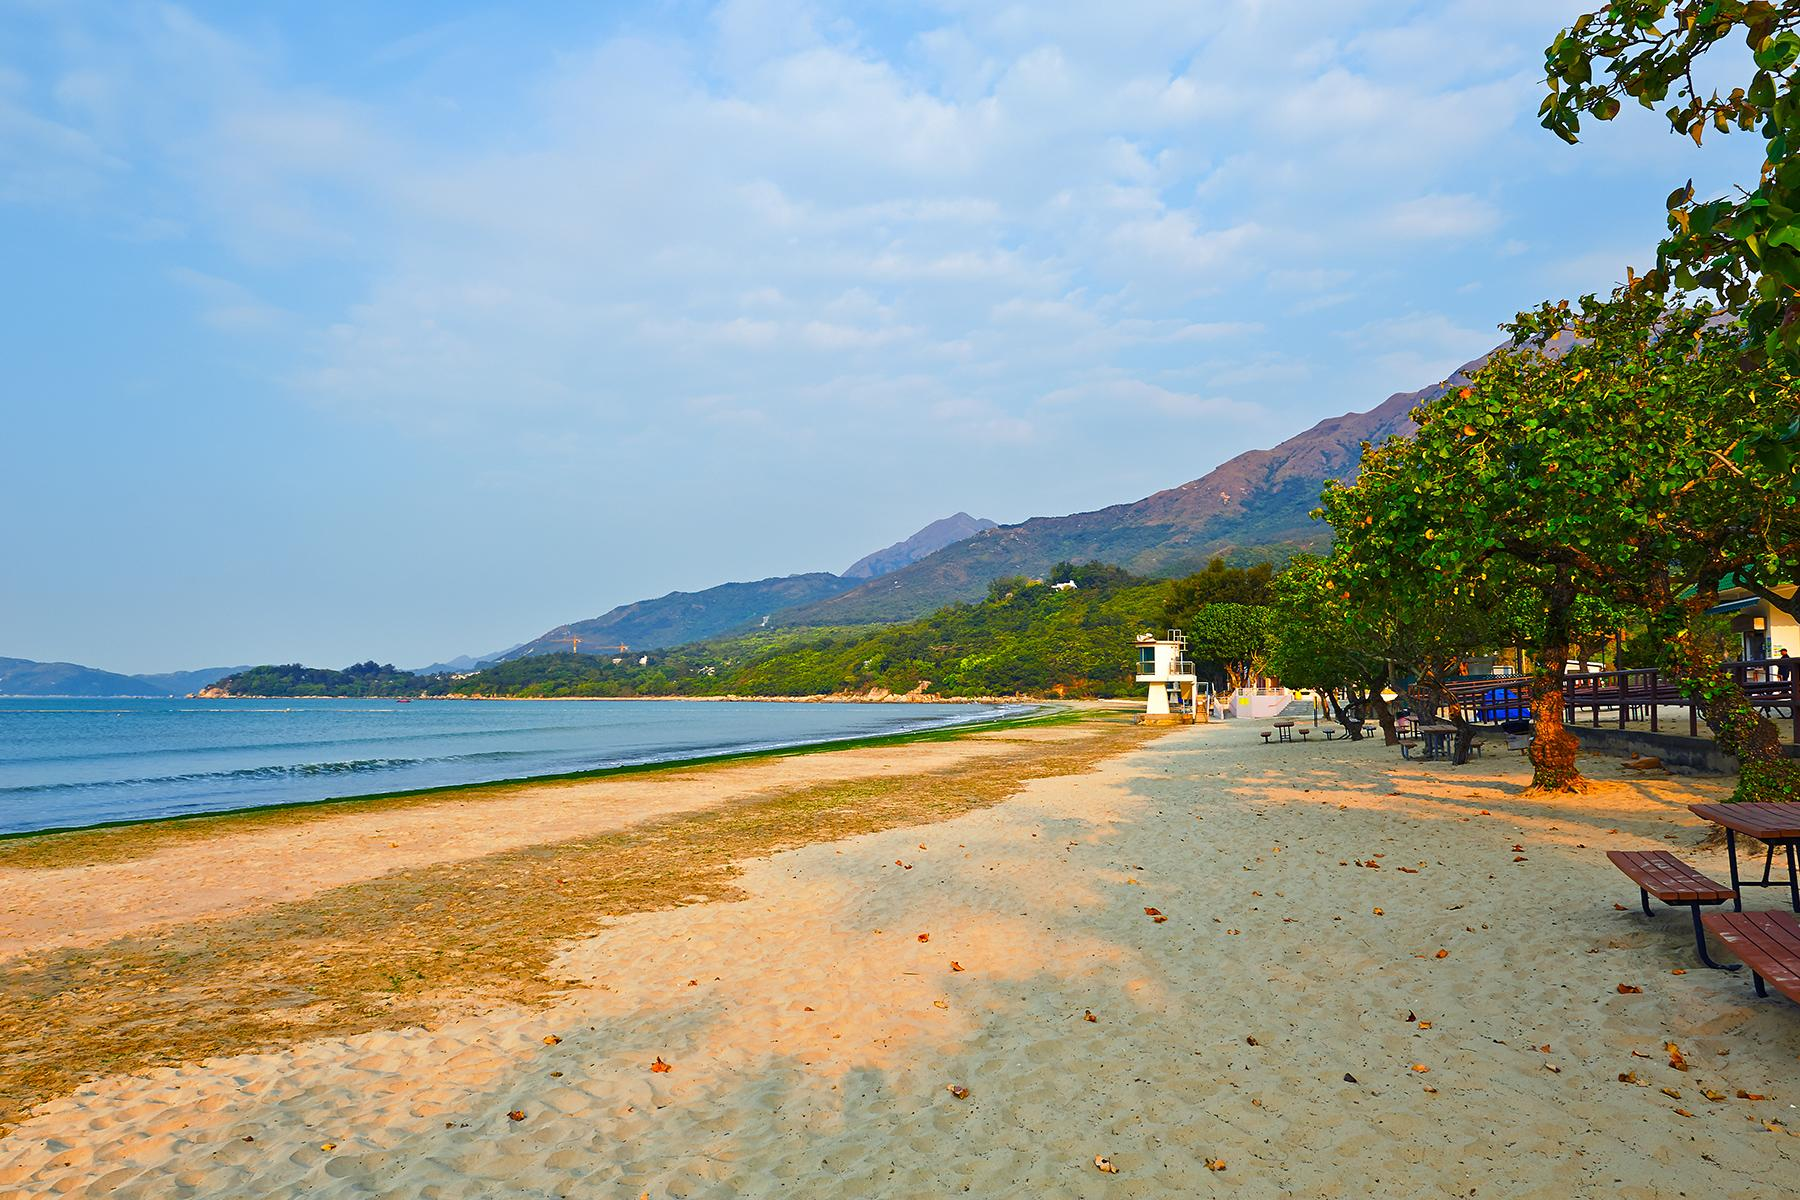 Hong Kong's 10 Best Beaches to See and Visit